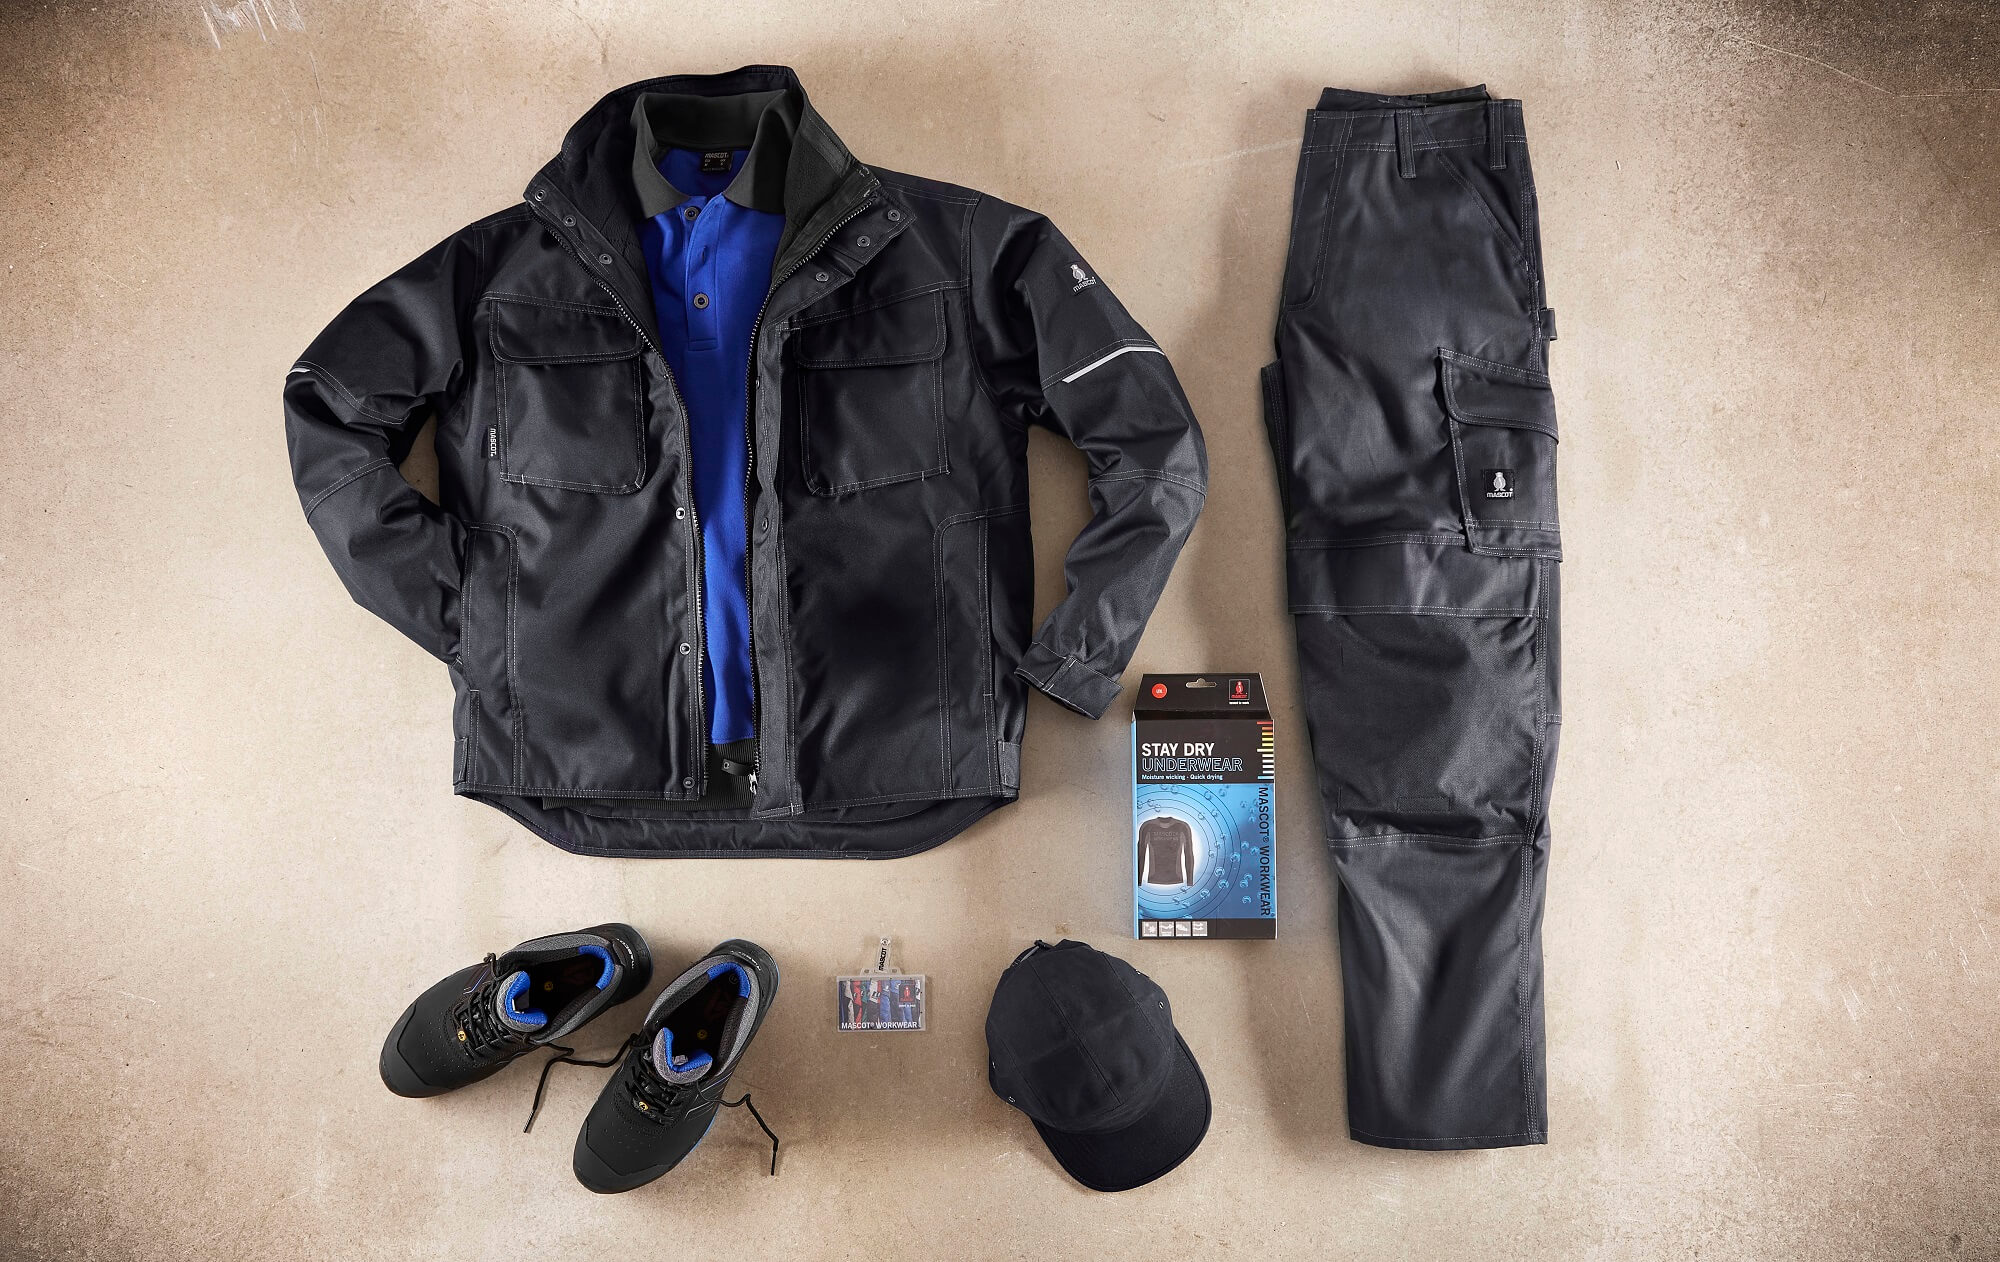 Black - Winter Jacket, Polo shirt, Trousers. Underwear & Safety Shoe - Collage